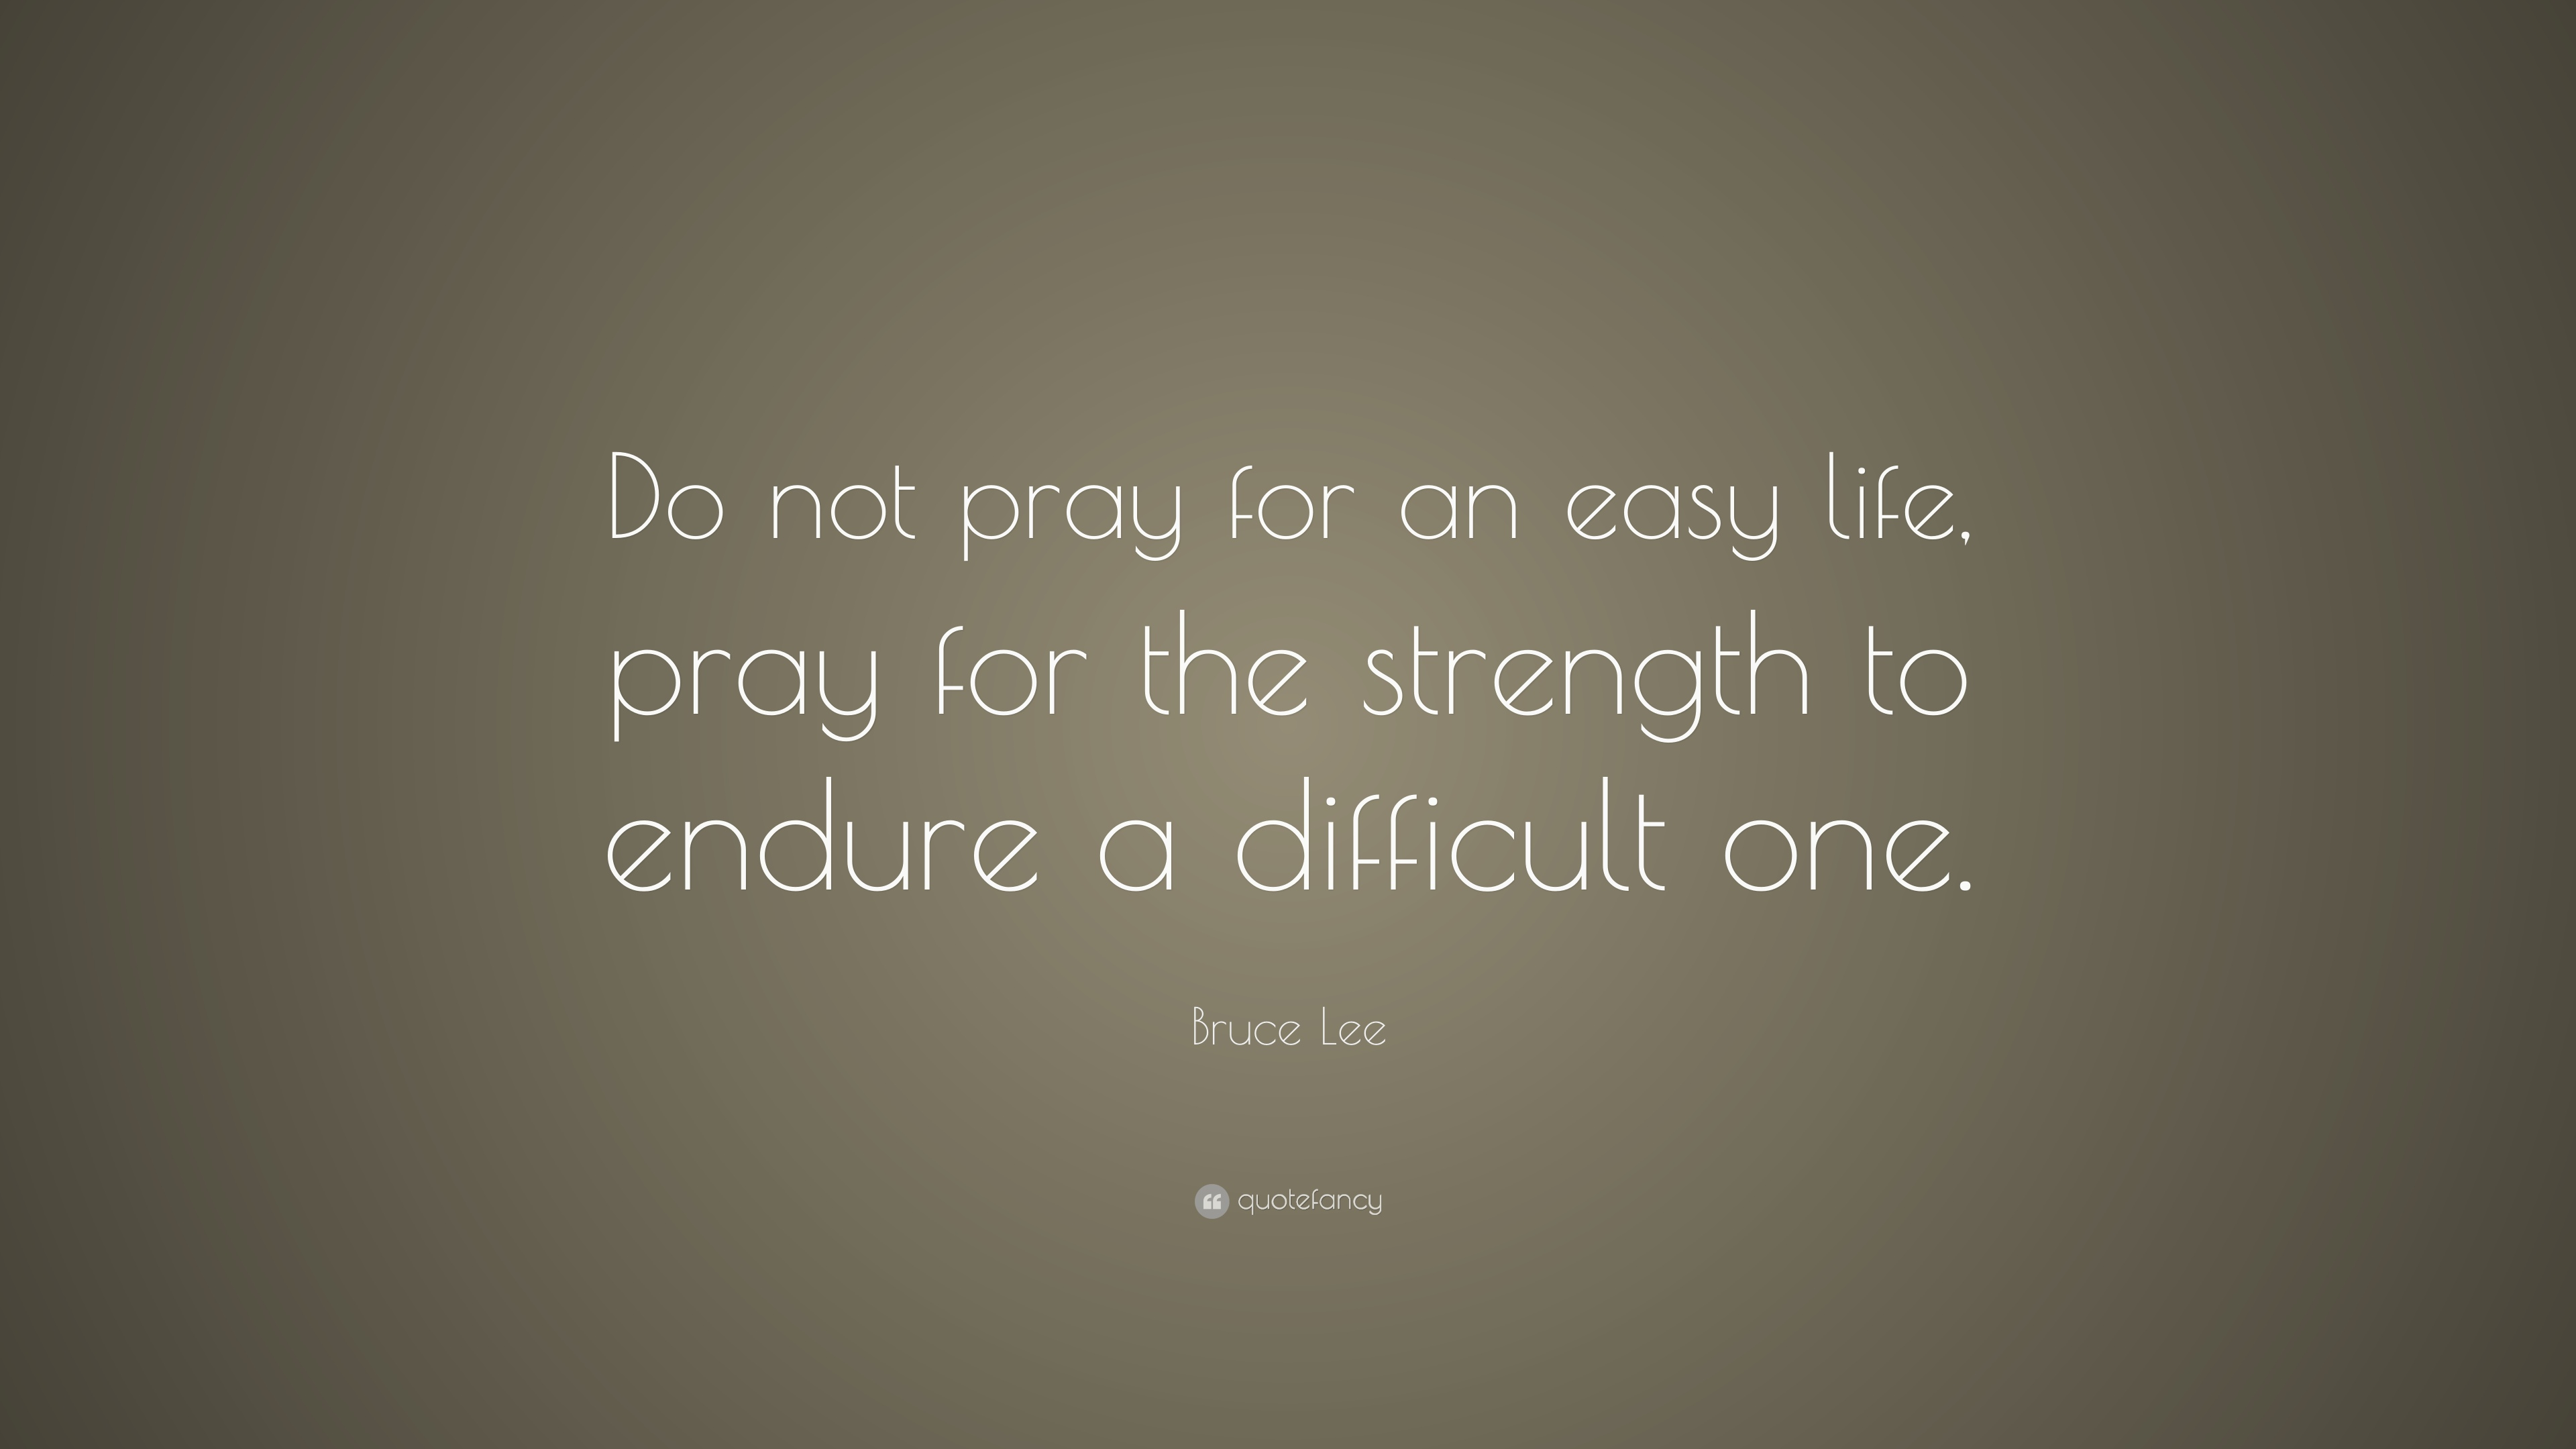 Life Is Not Easy Quotes Easy Lives Pray Quote  Inspiring Quotes And Words In Life